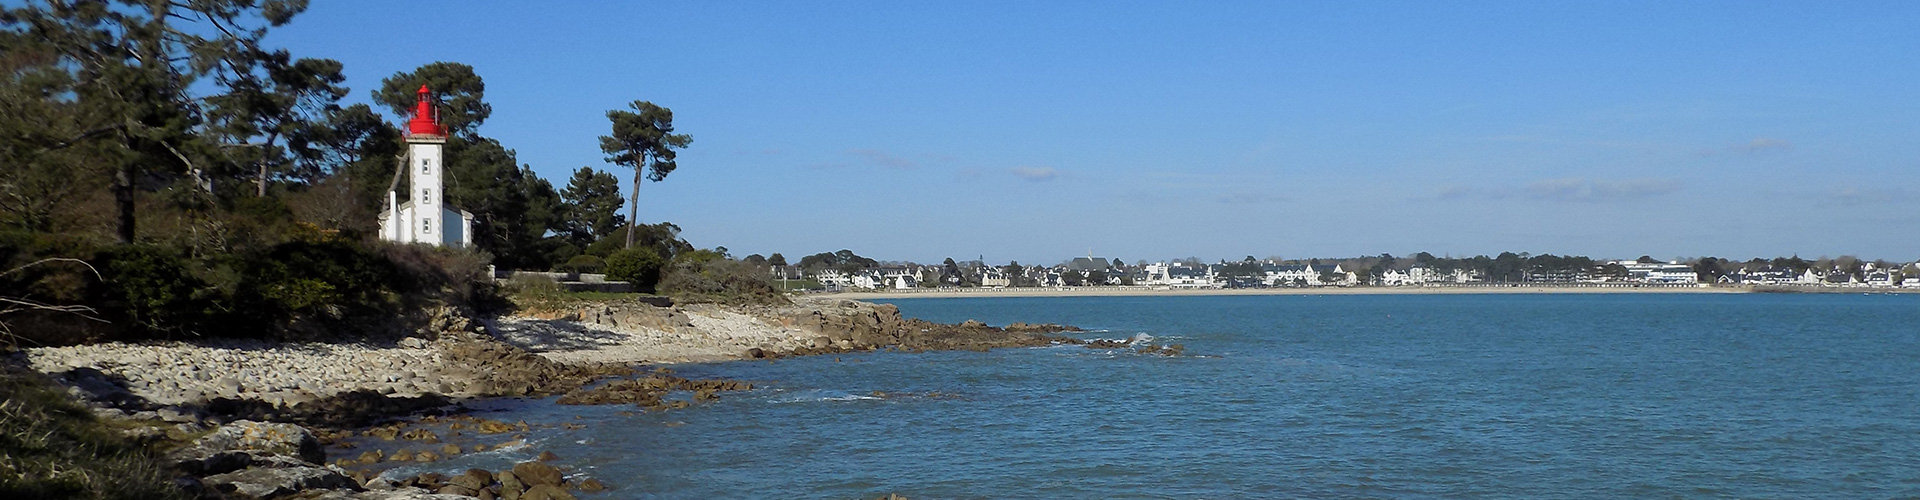 Littoral Ouest Immobilier